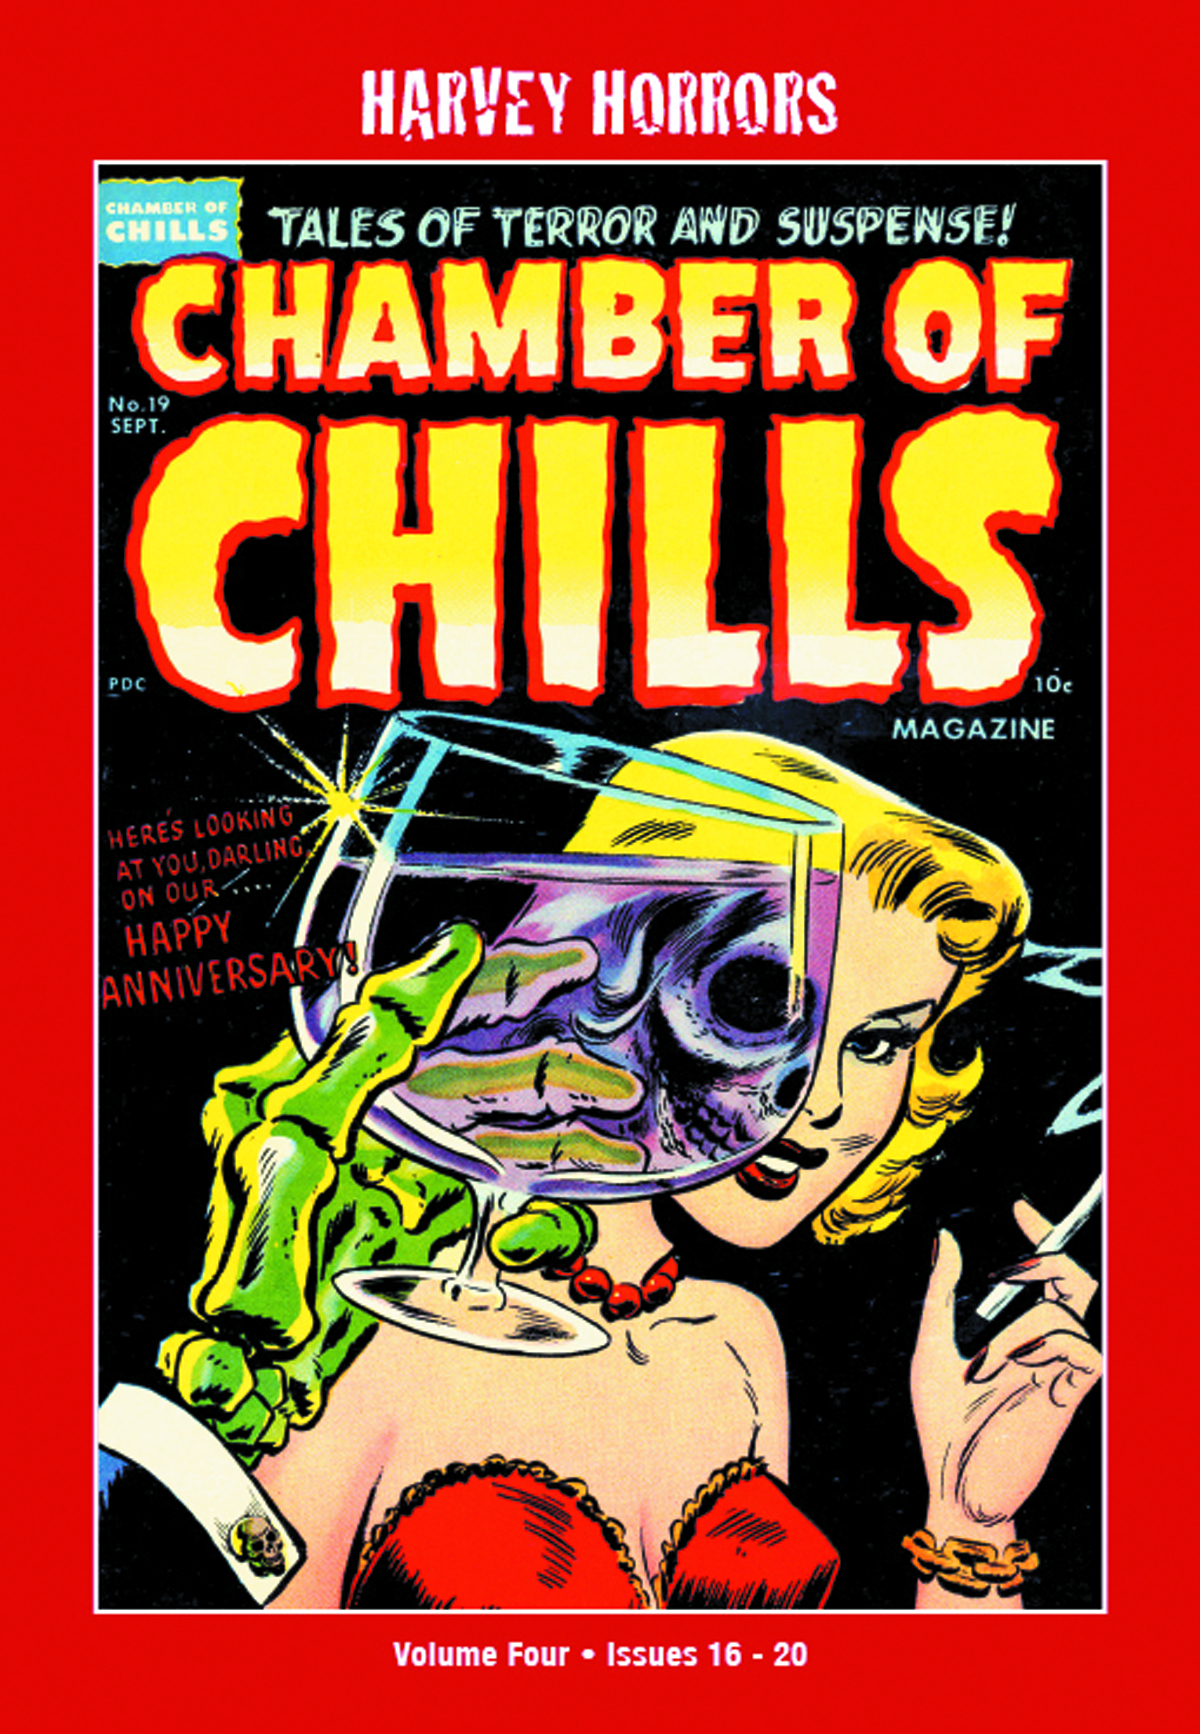 HARVEY HORRORS CHAMBER OF CHILLS SOFTIE TP VOL 04